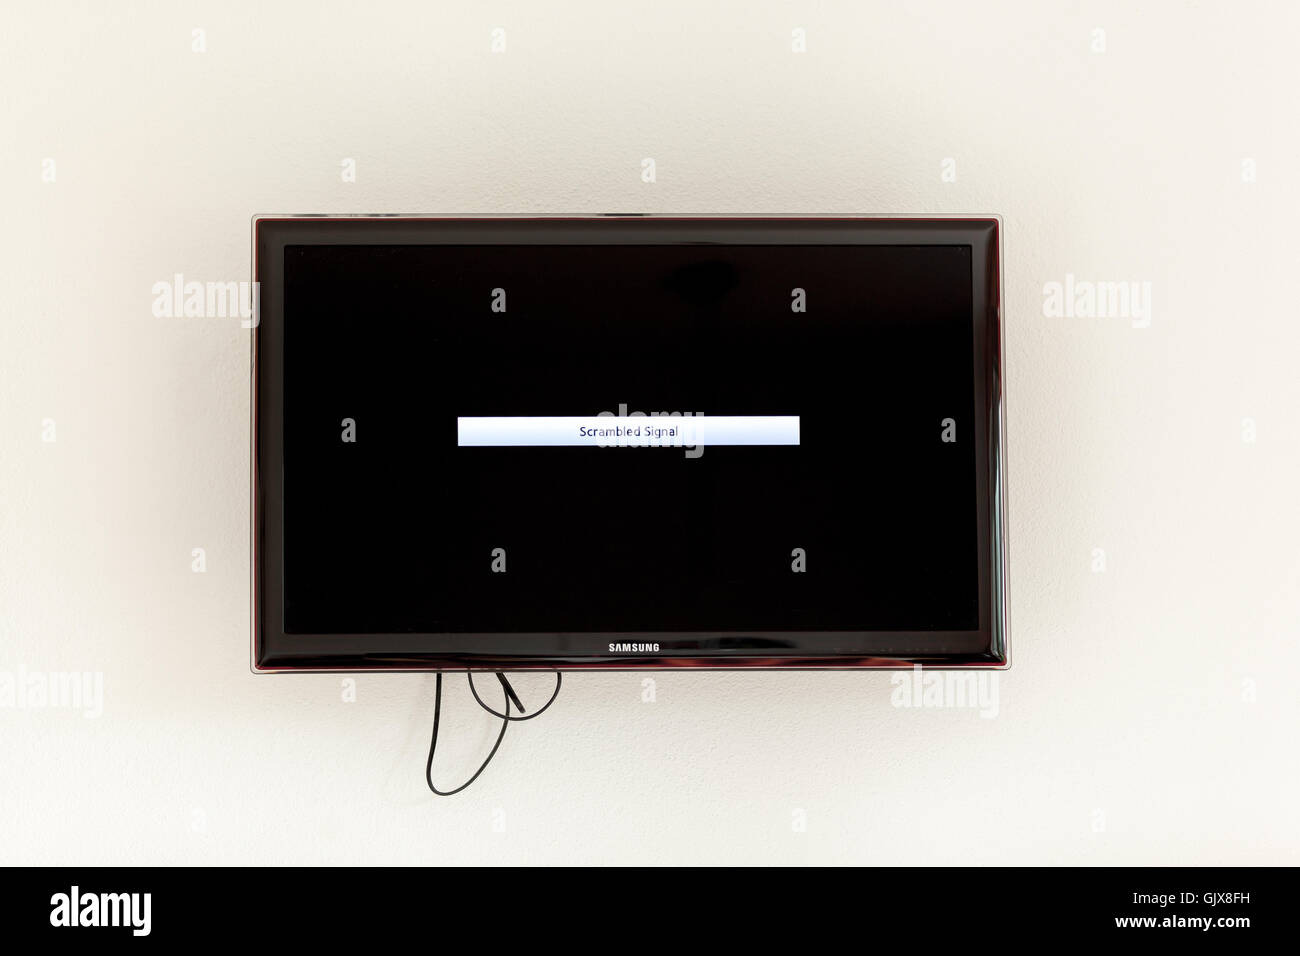 Samsung Tv Stock Photos & Samsung Tv Stock Images - Alamy